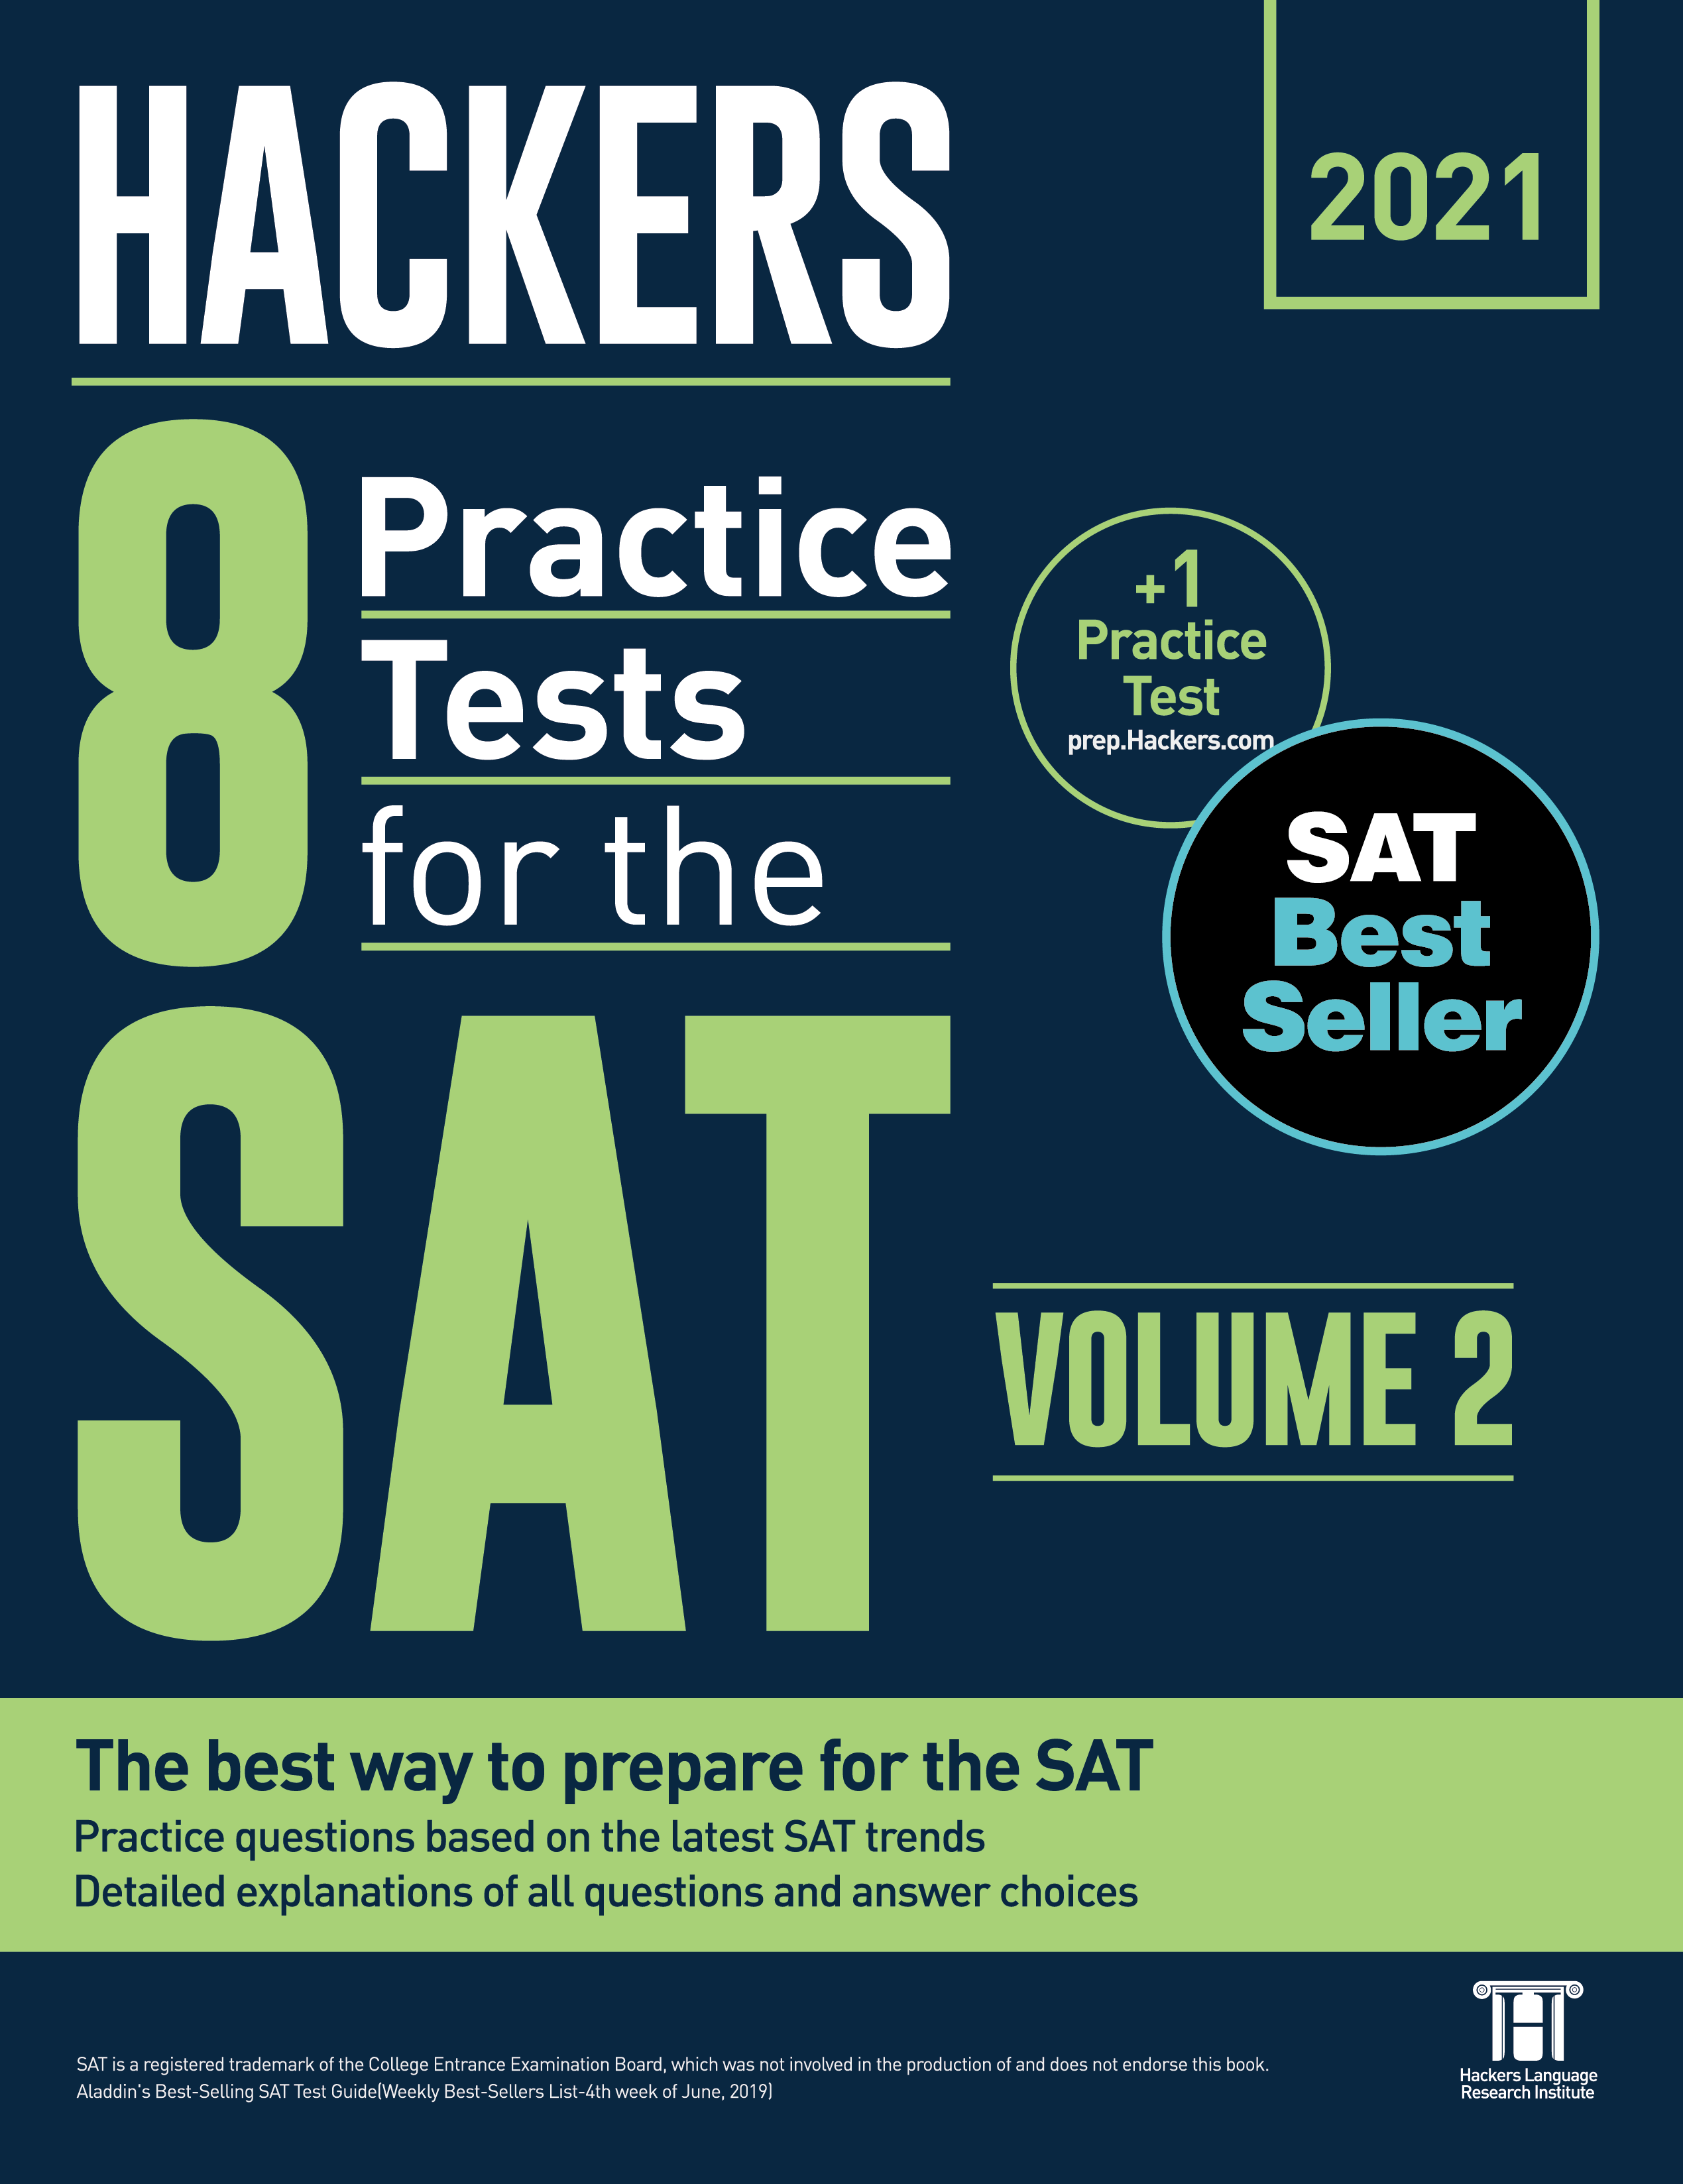 Hackers 8 Practice Tests for the SAT 2